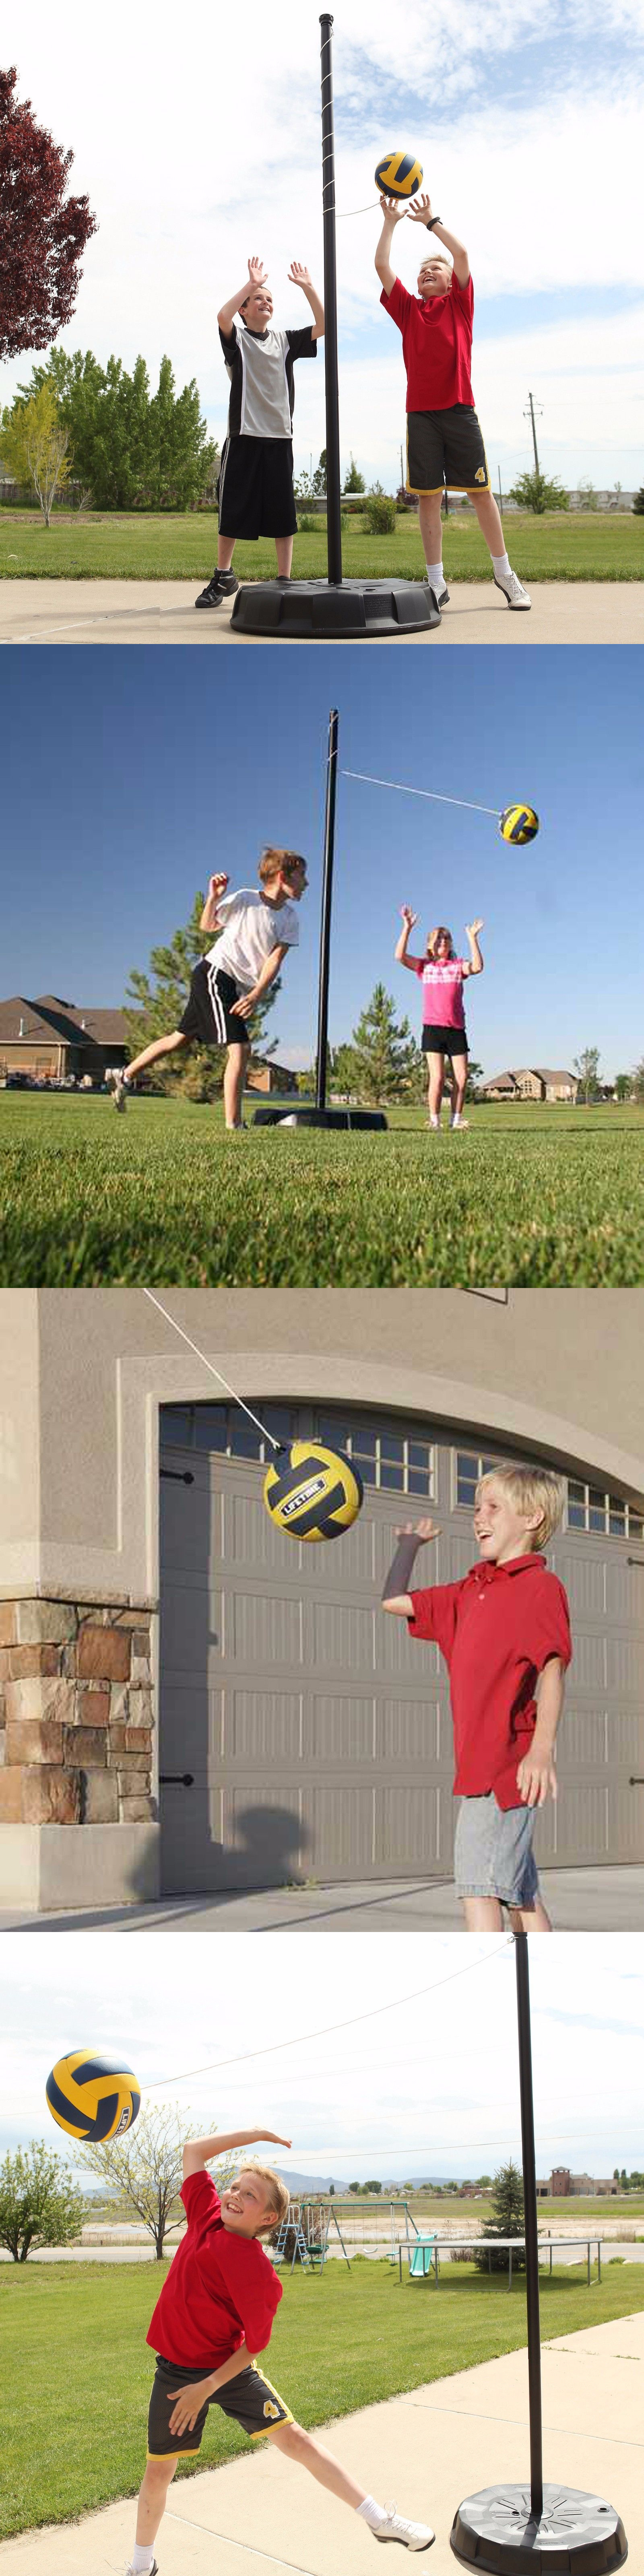 Tetherball 159080: Tetherball System Outdoor Portable Heavy Duty Base Soft Touch Ball Easy To Roll BUY IT NOW ONLY: $139.98